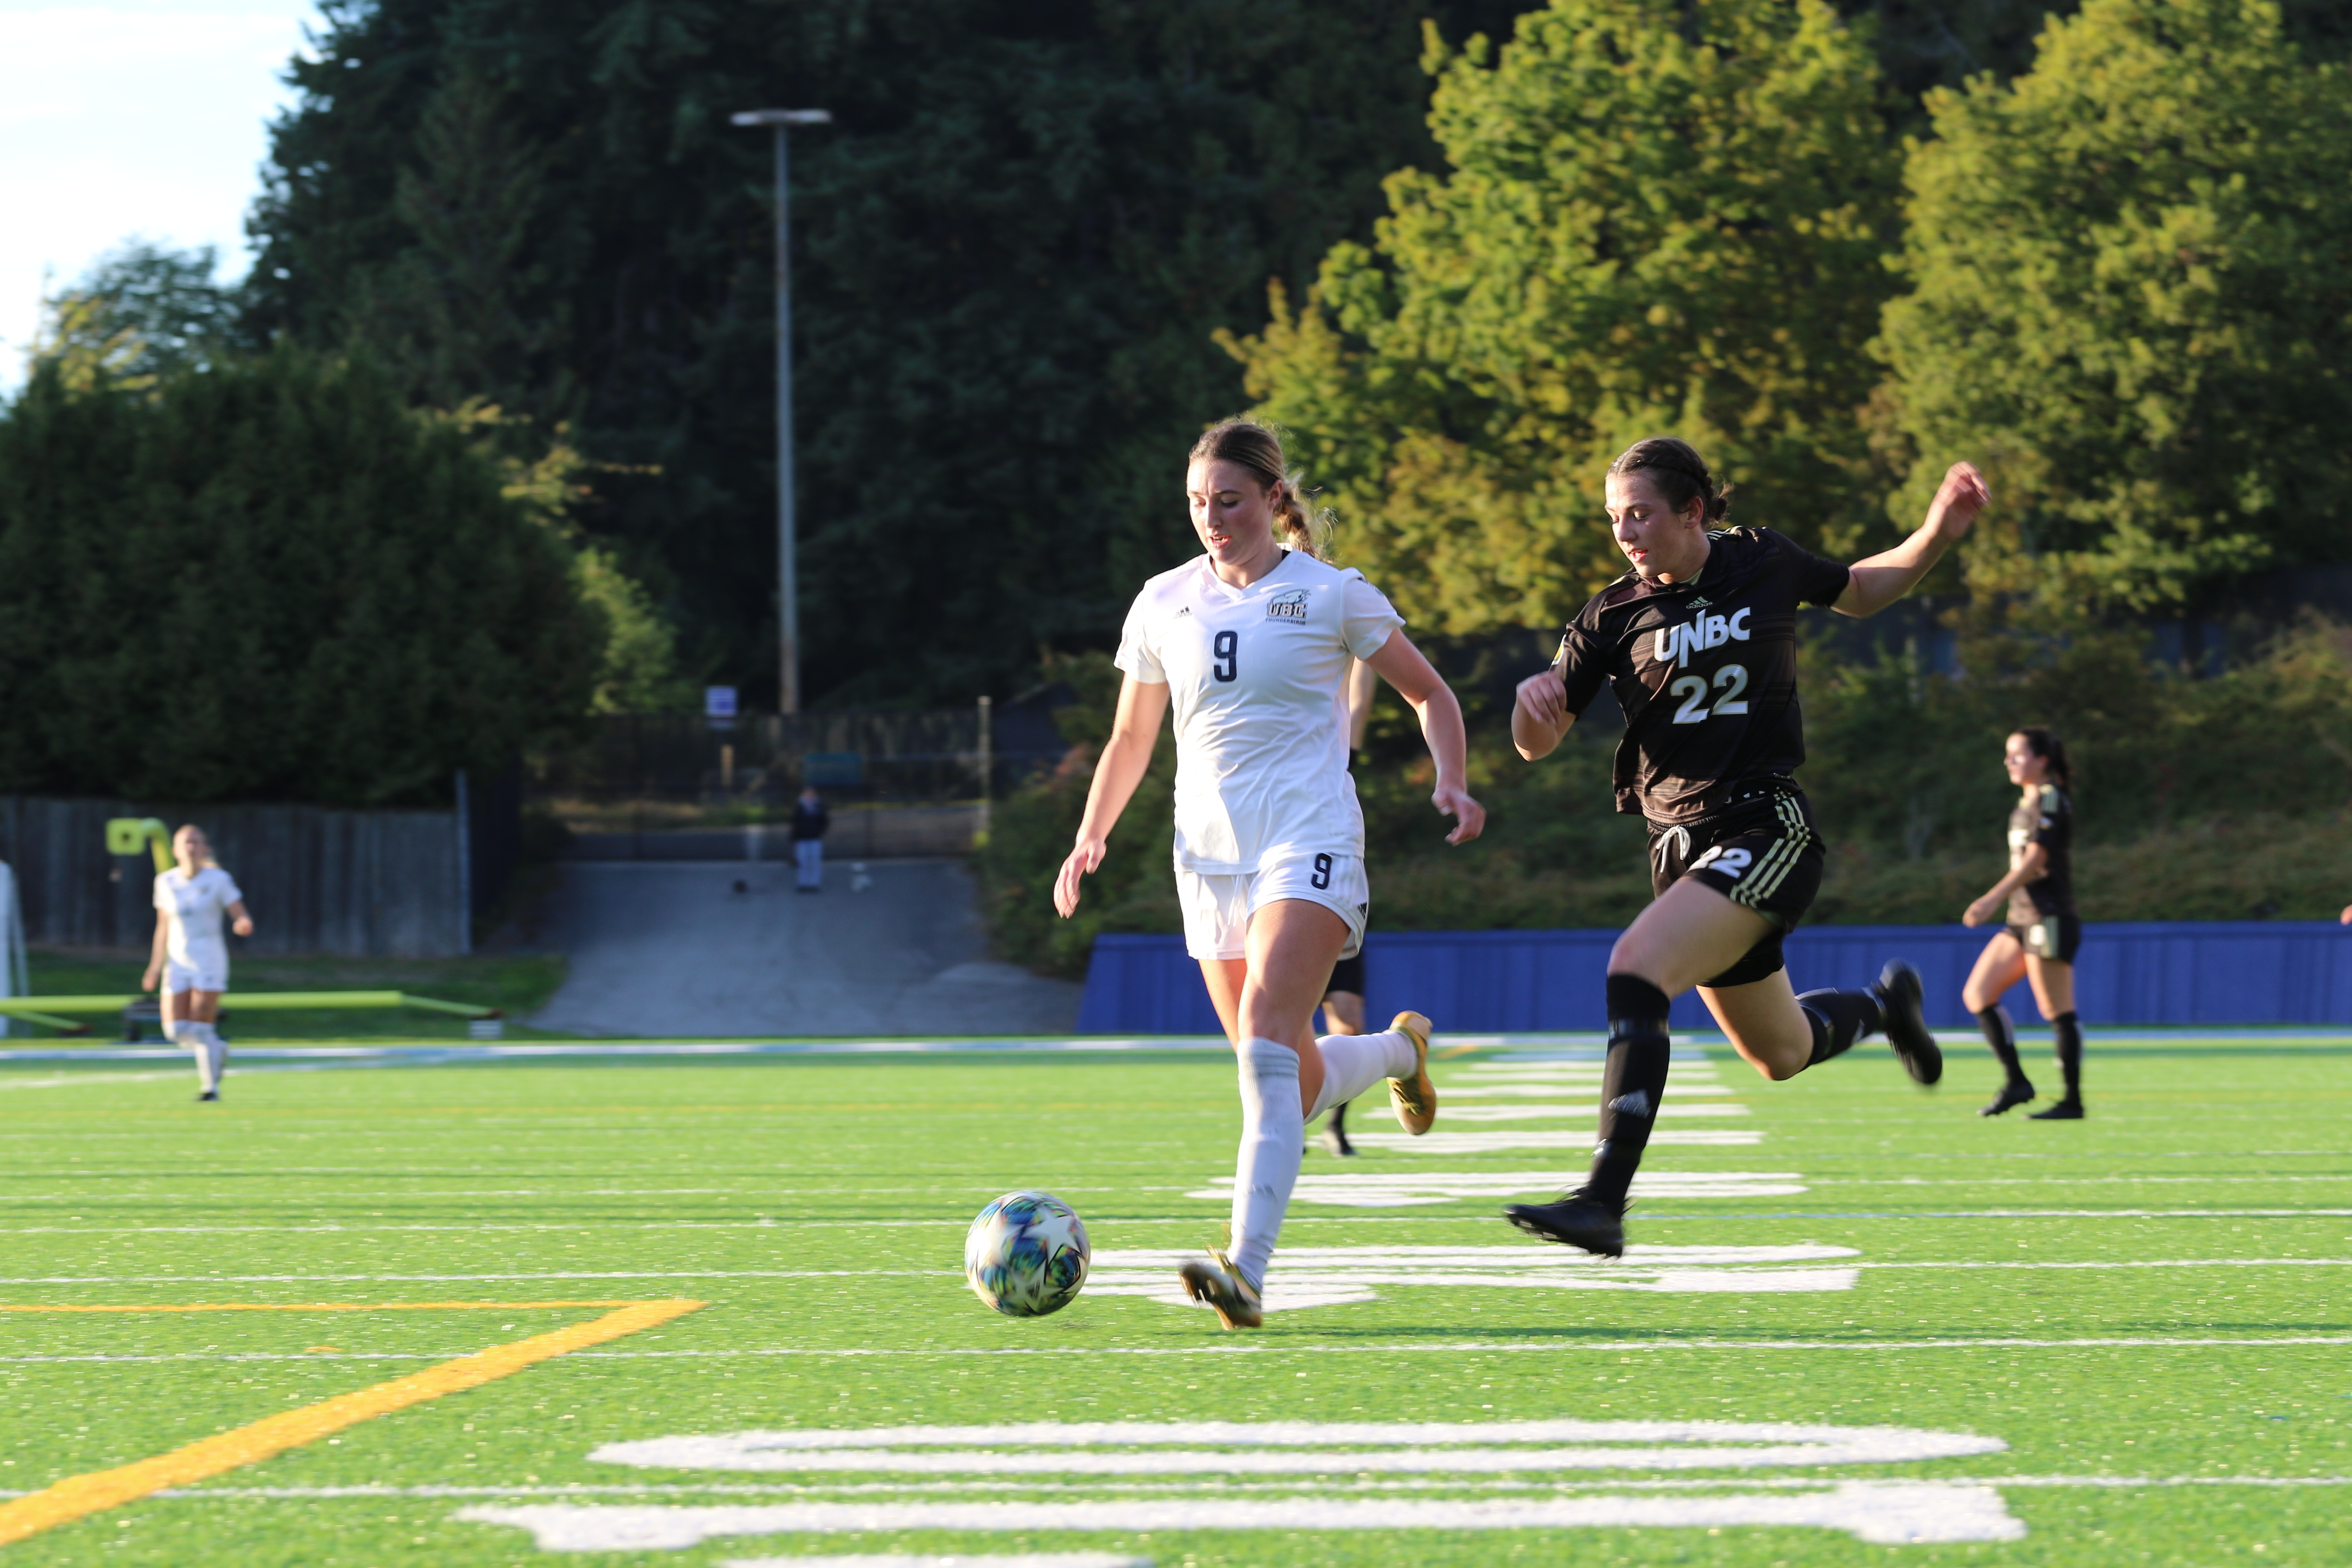 Steer scored another in the 54th minute from another assist from Mosher.